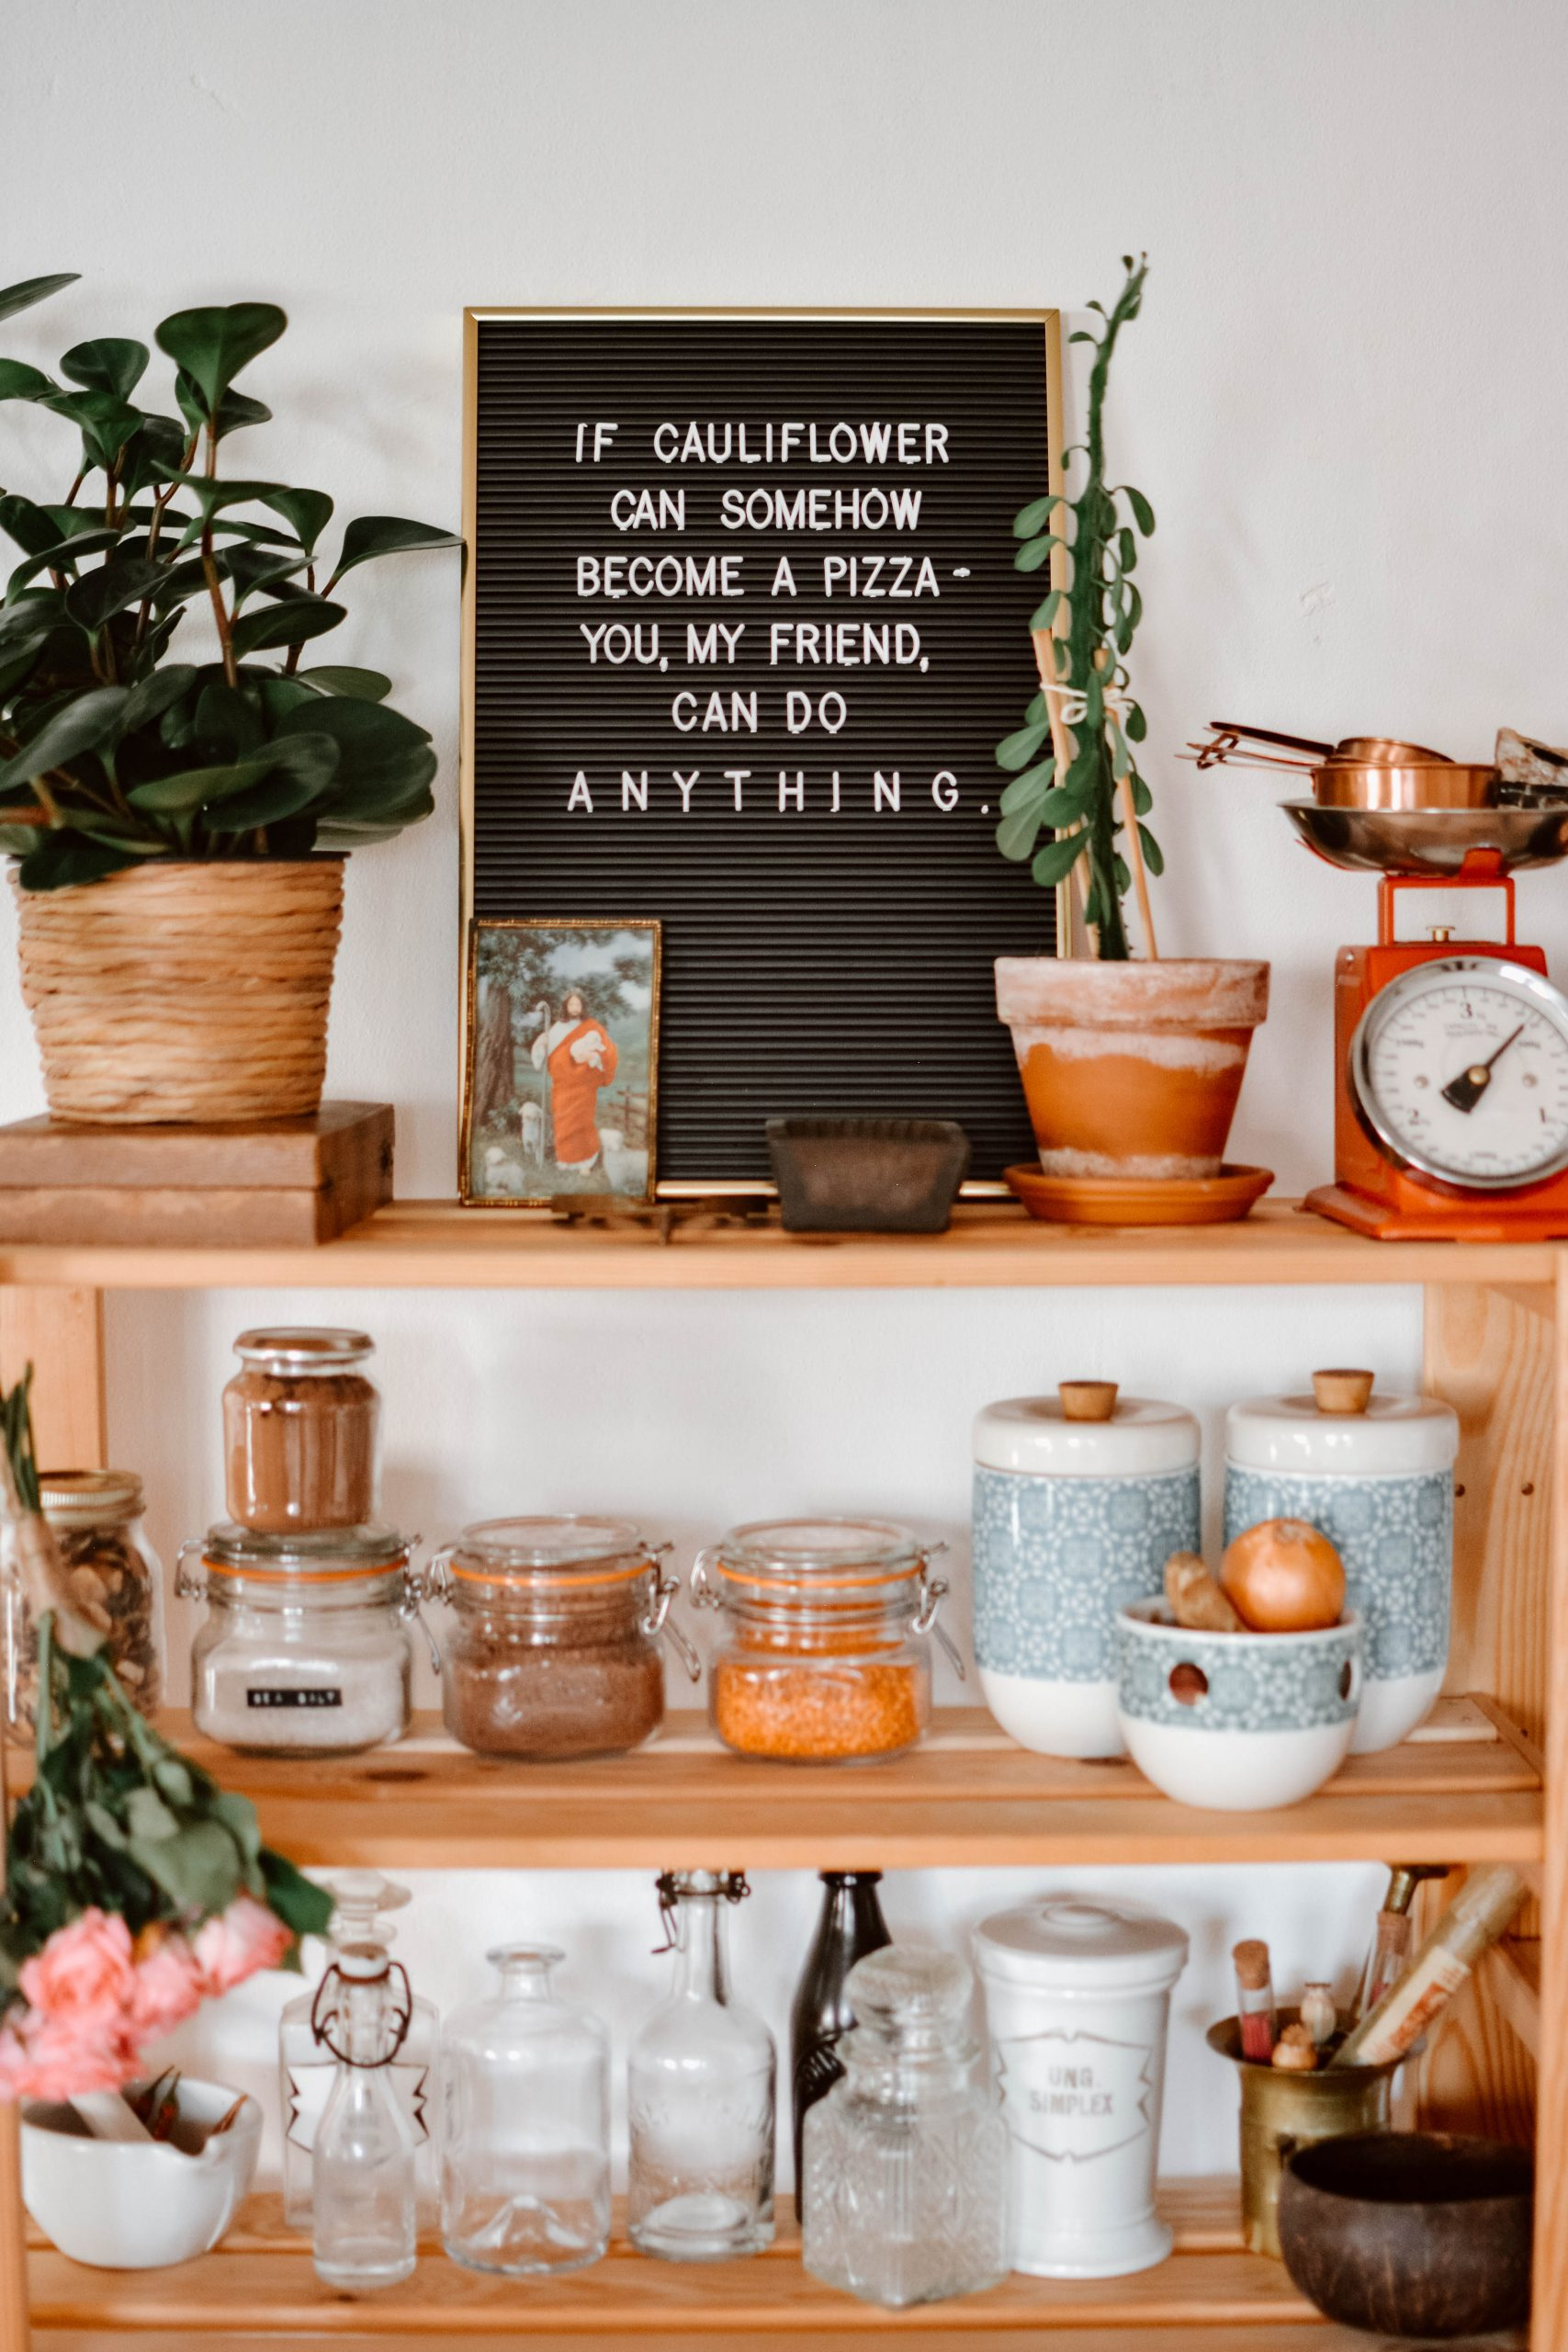 50 letter board quotes that will brighten your day